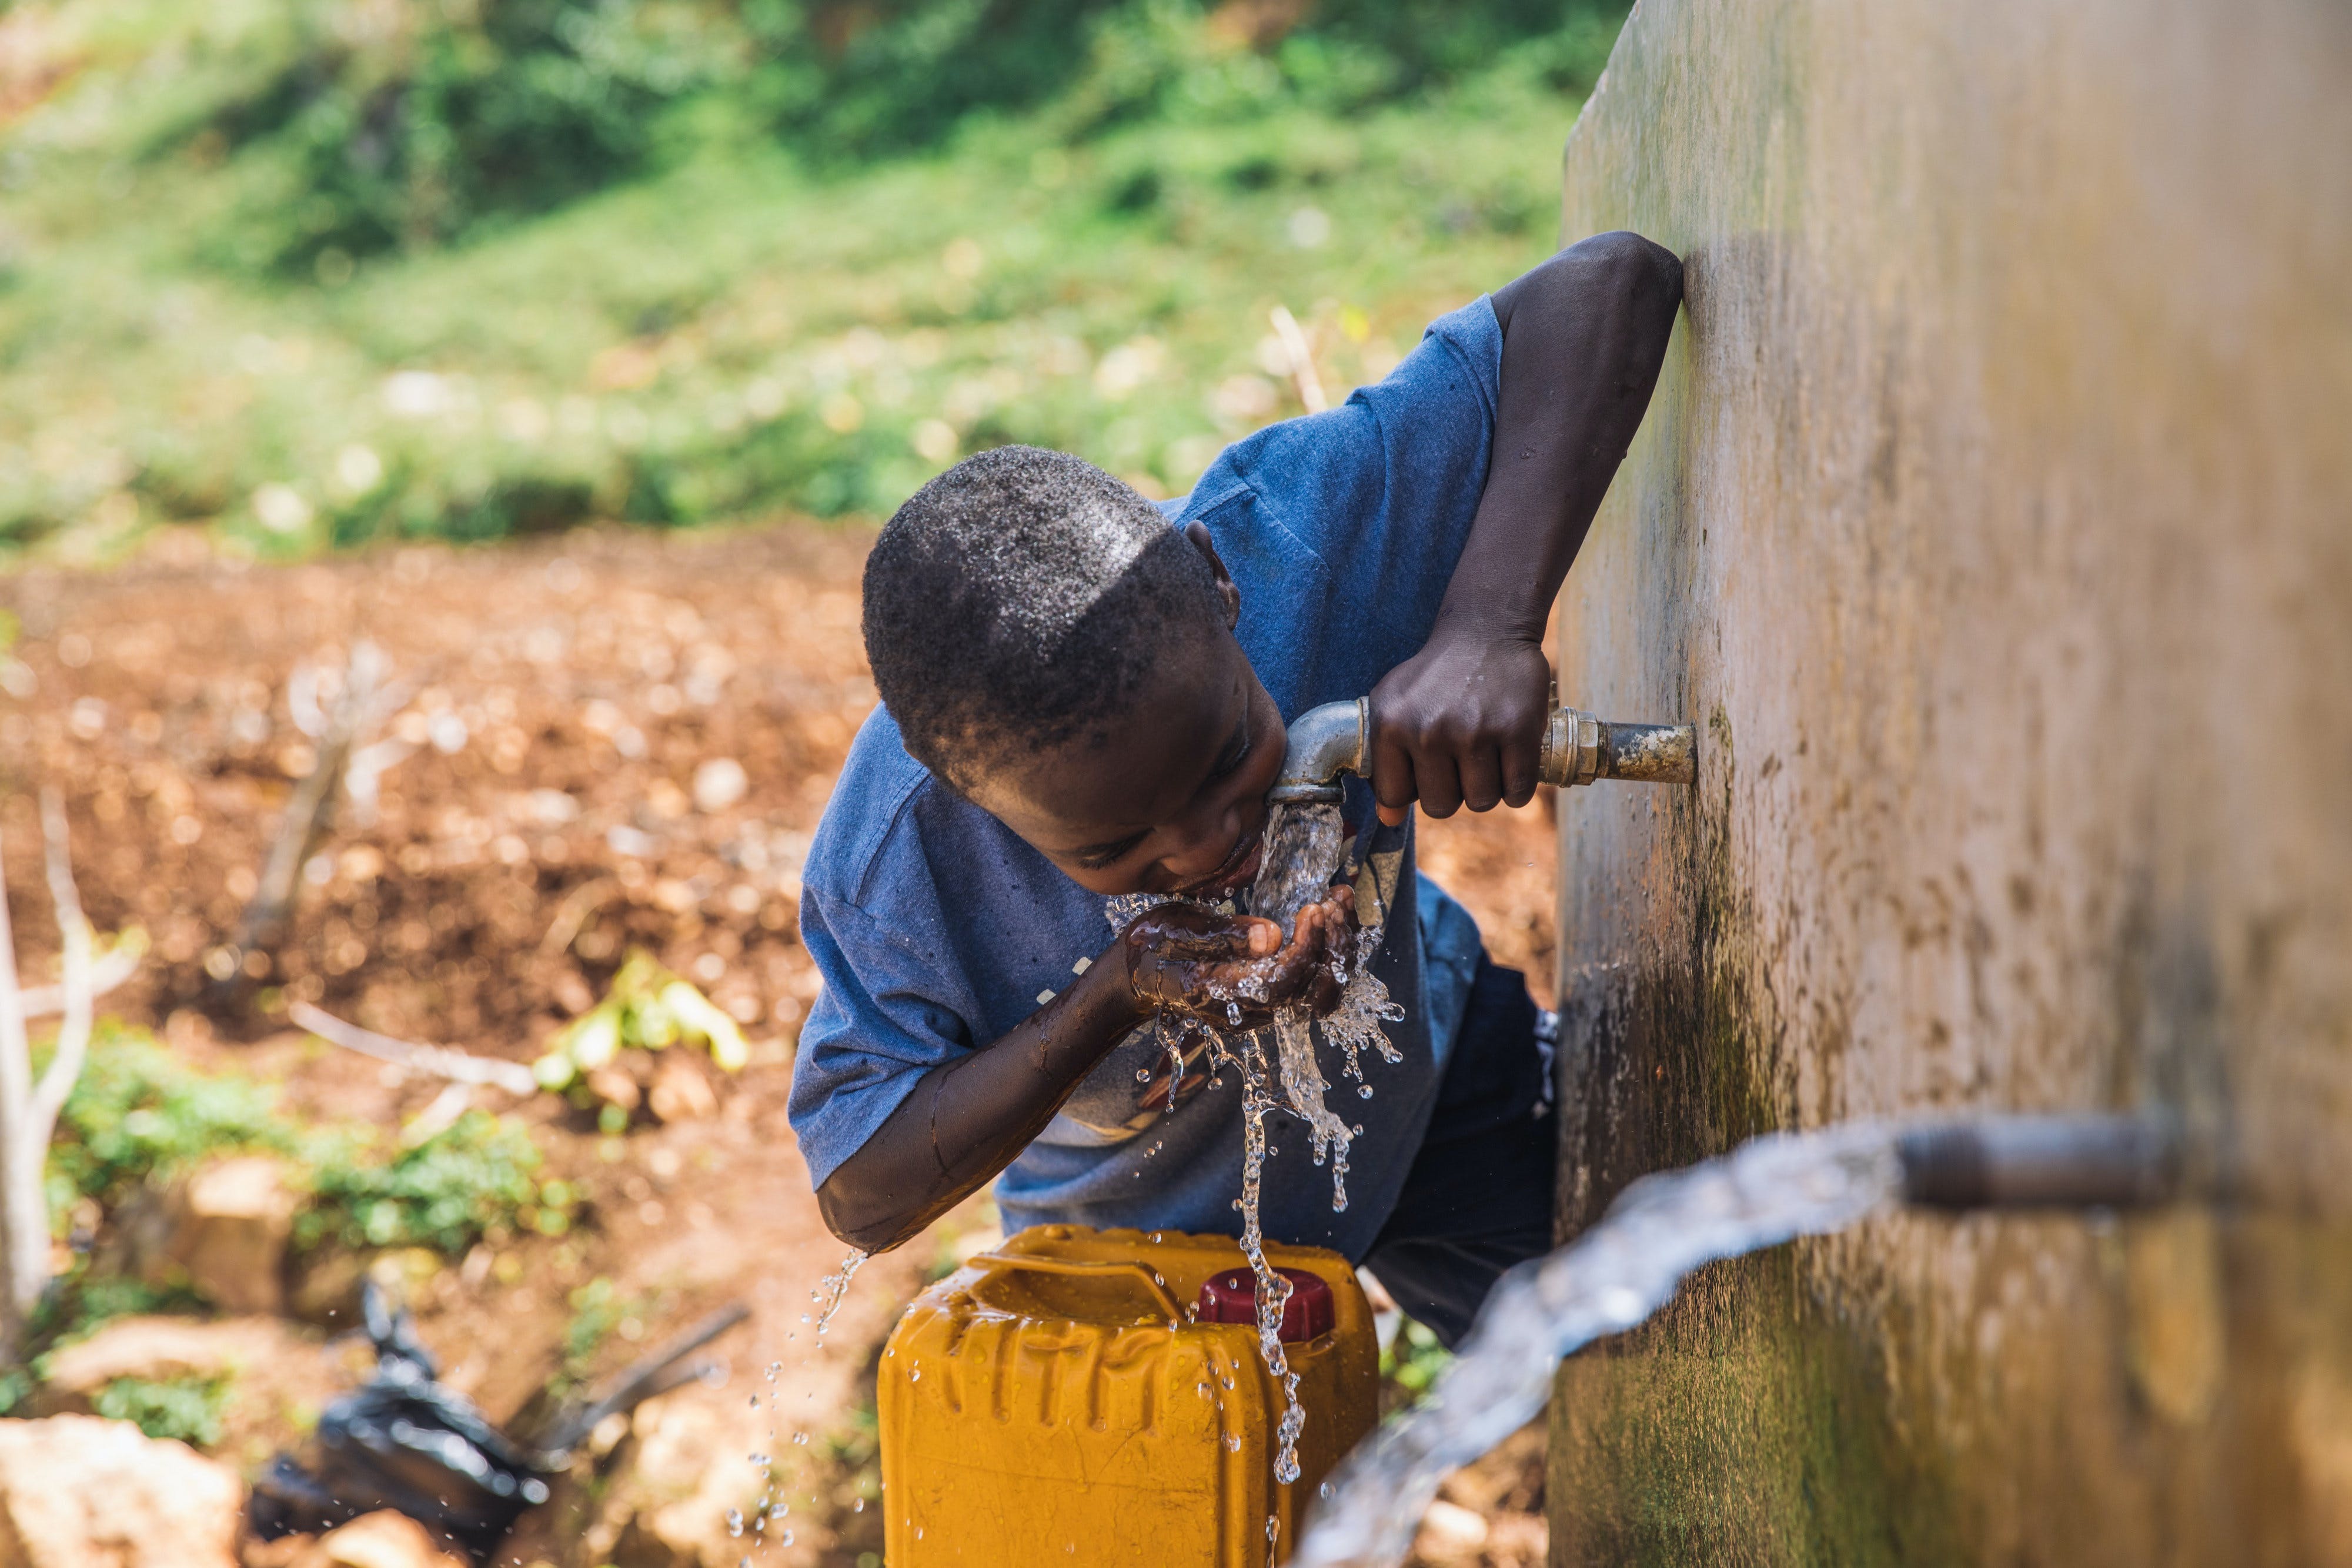 Boy drinks clean water from faucet in Haiti